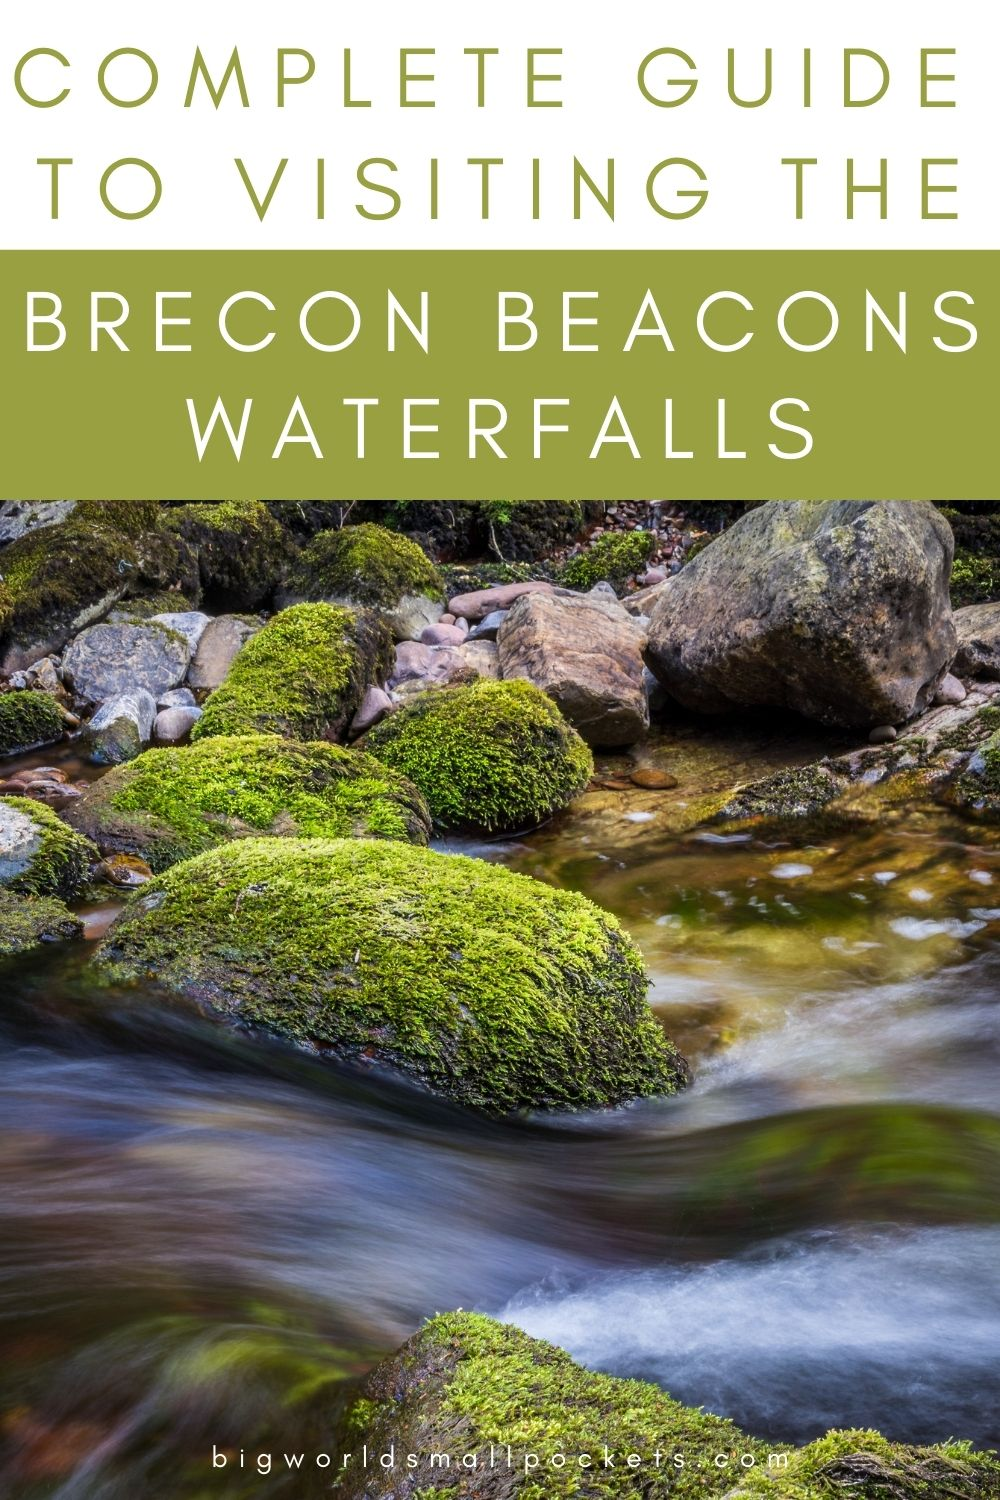 Complete Guide to Visiting the Brecon Beacons Waterfalls in Wales, UK